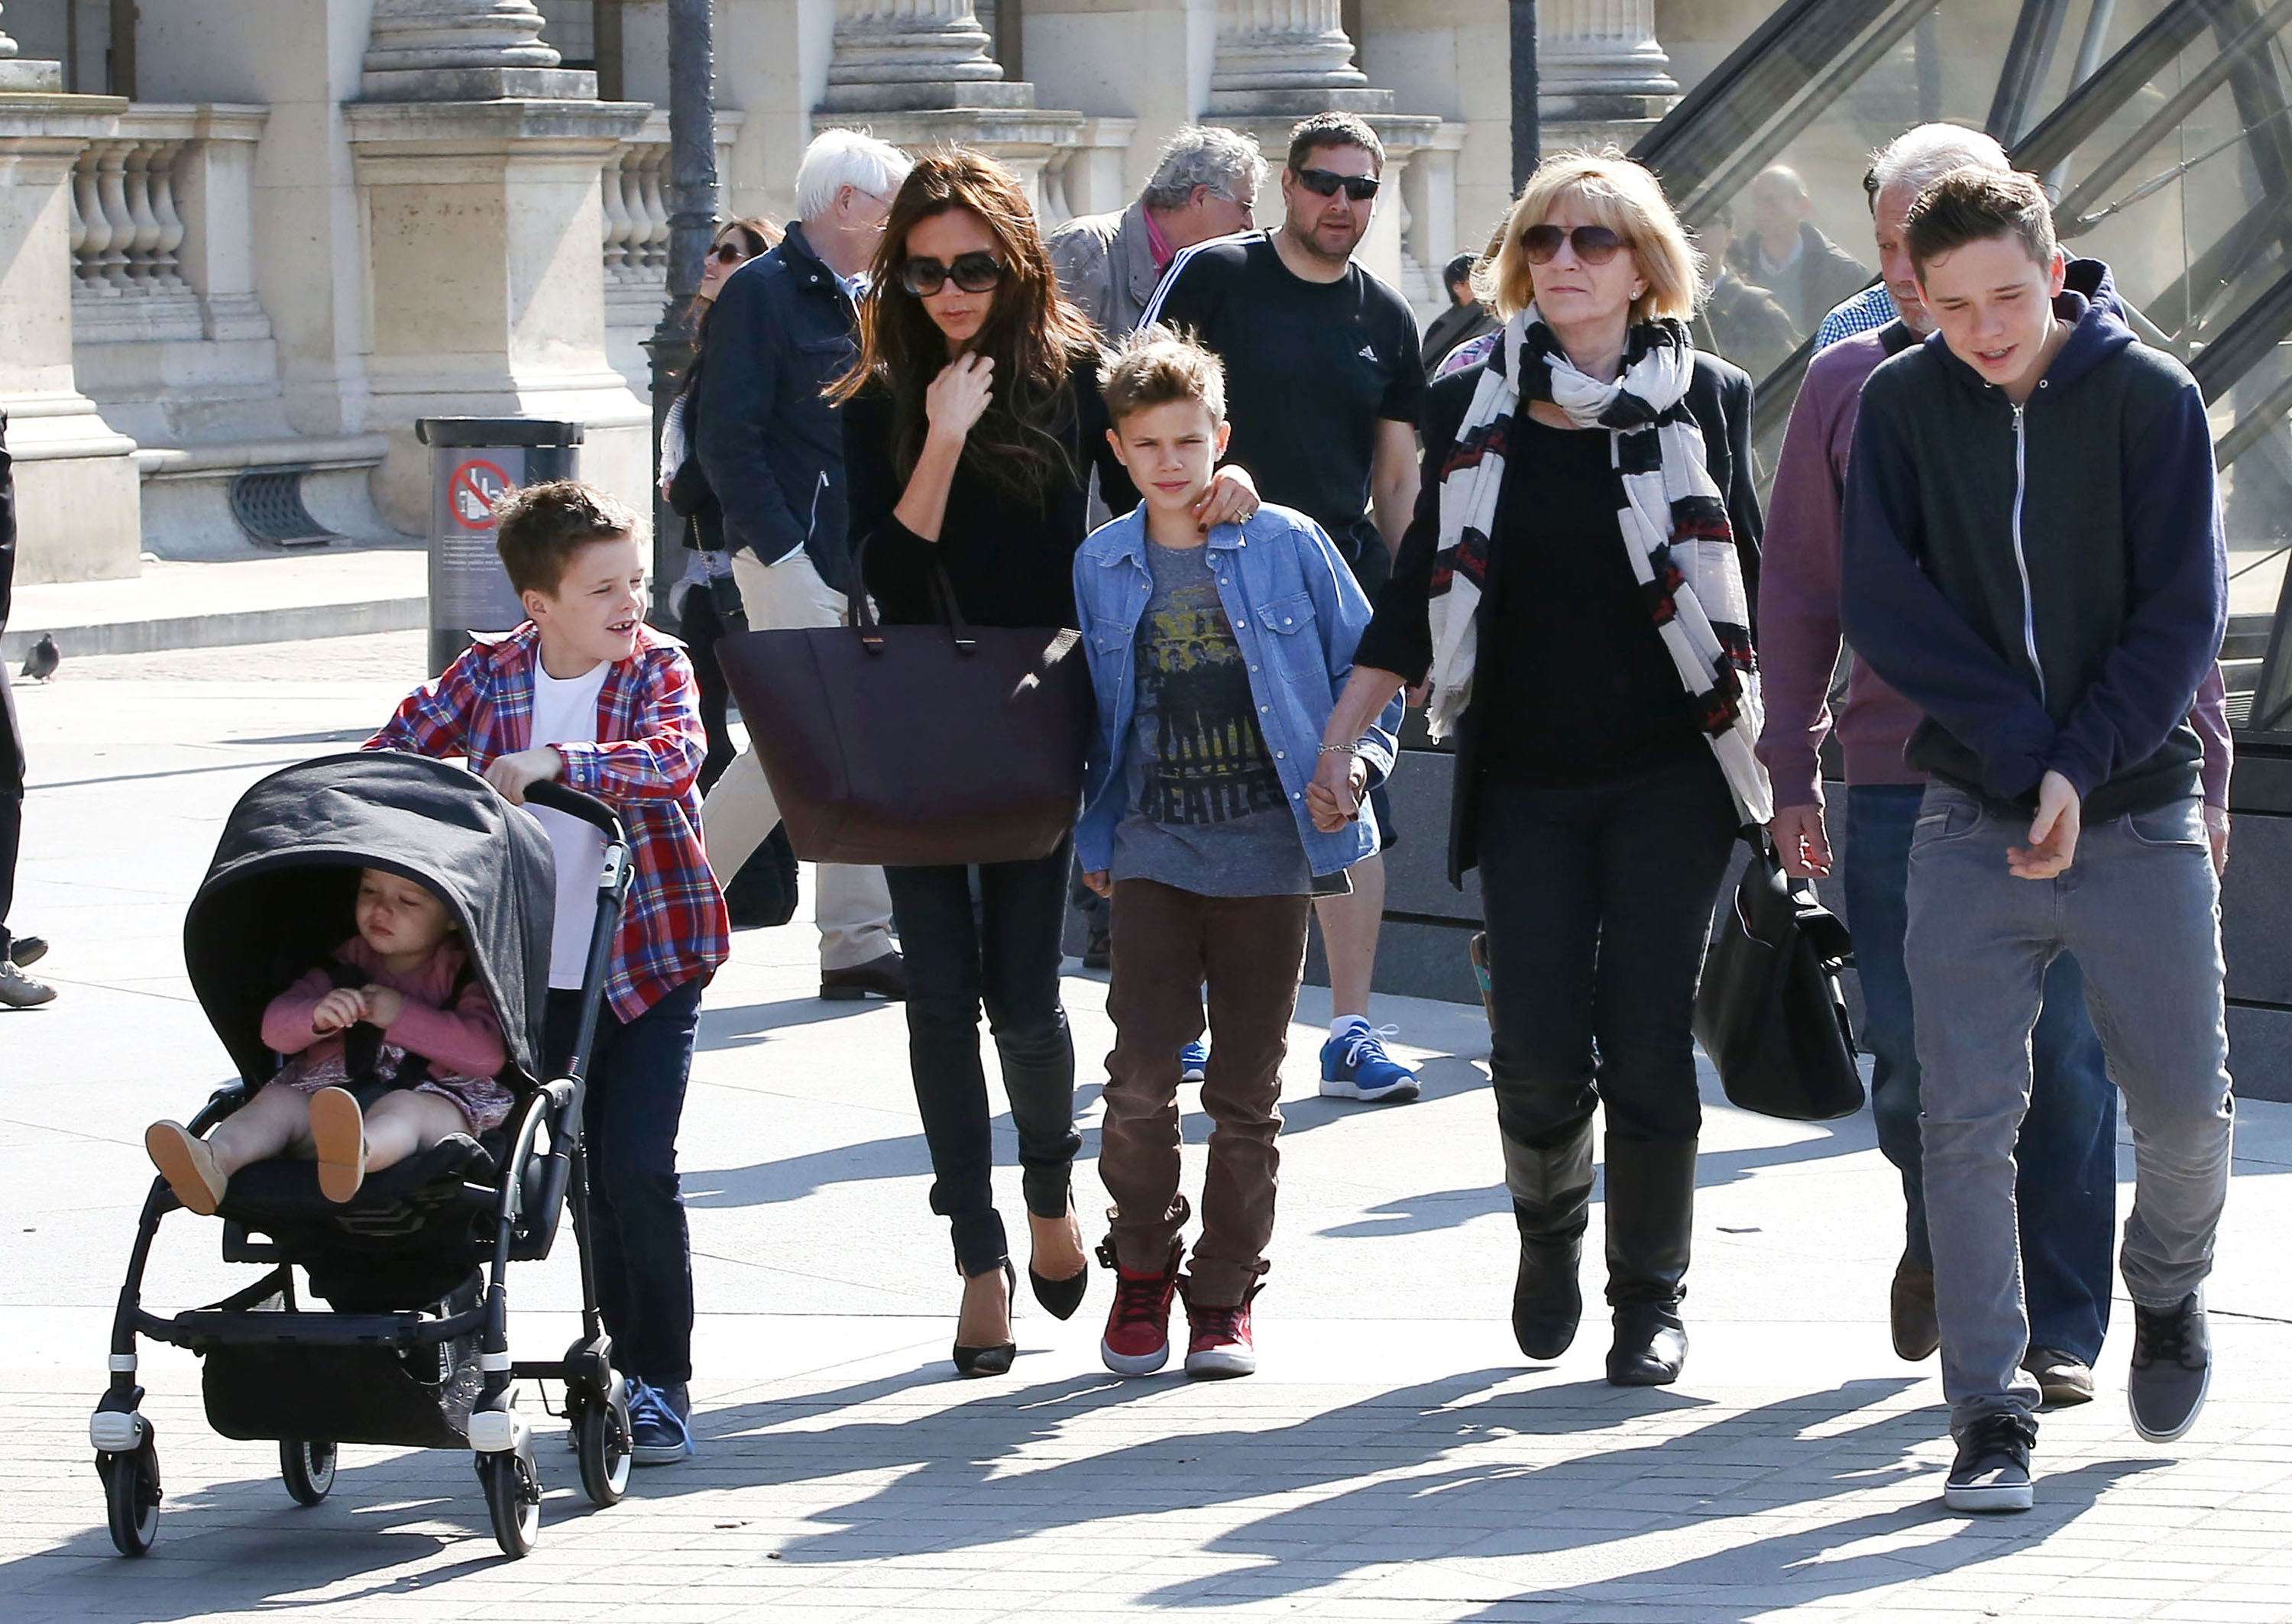 Victoria Beckham took her family to the Louvre on Sunday.